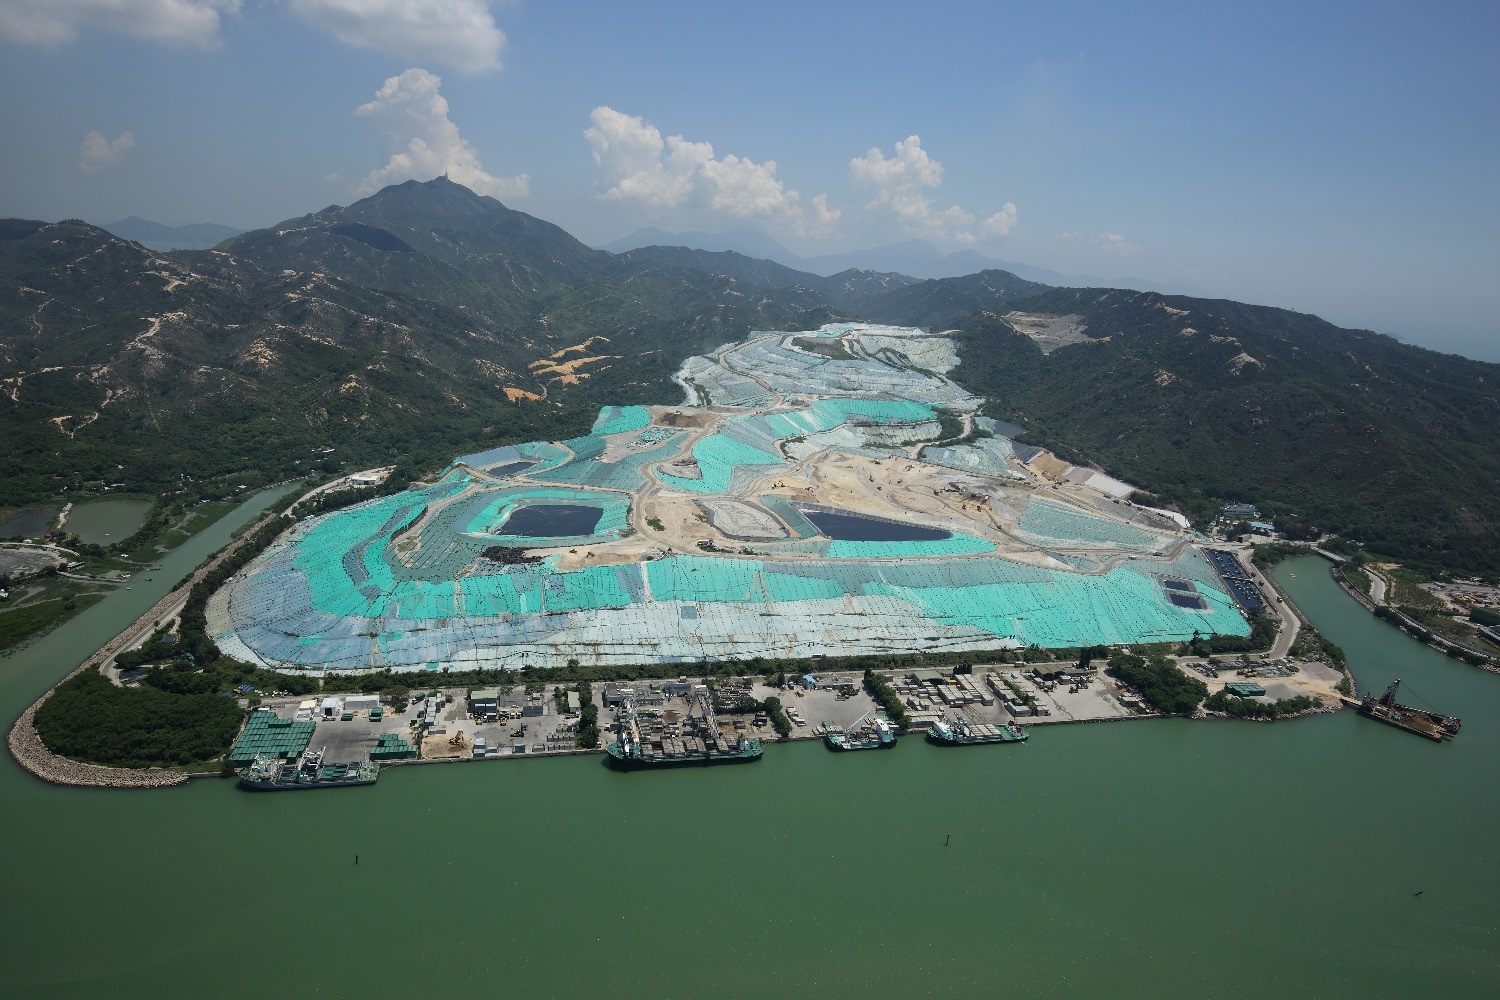 Image of West New Territories (WENT) Landfill